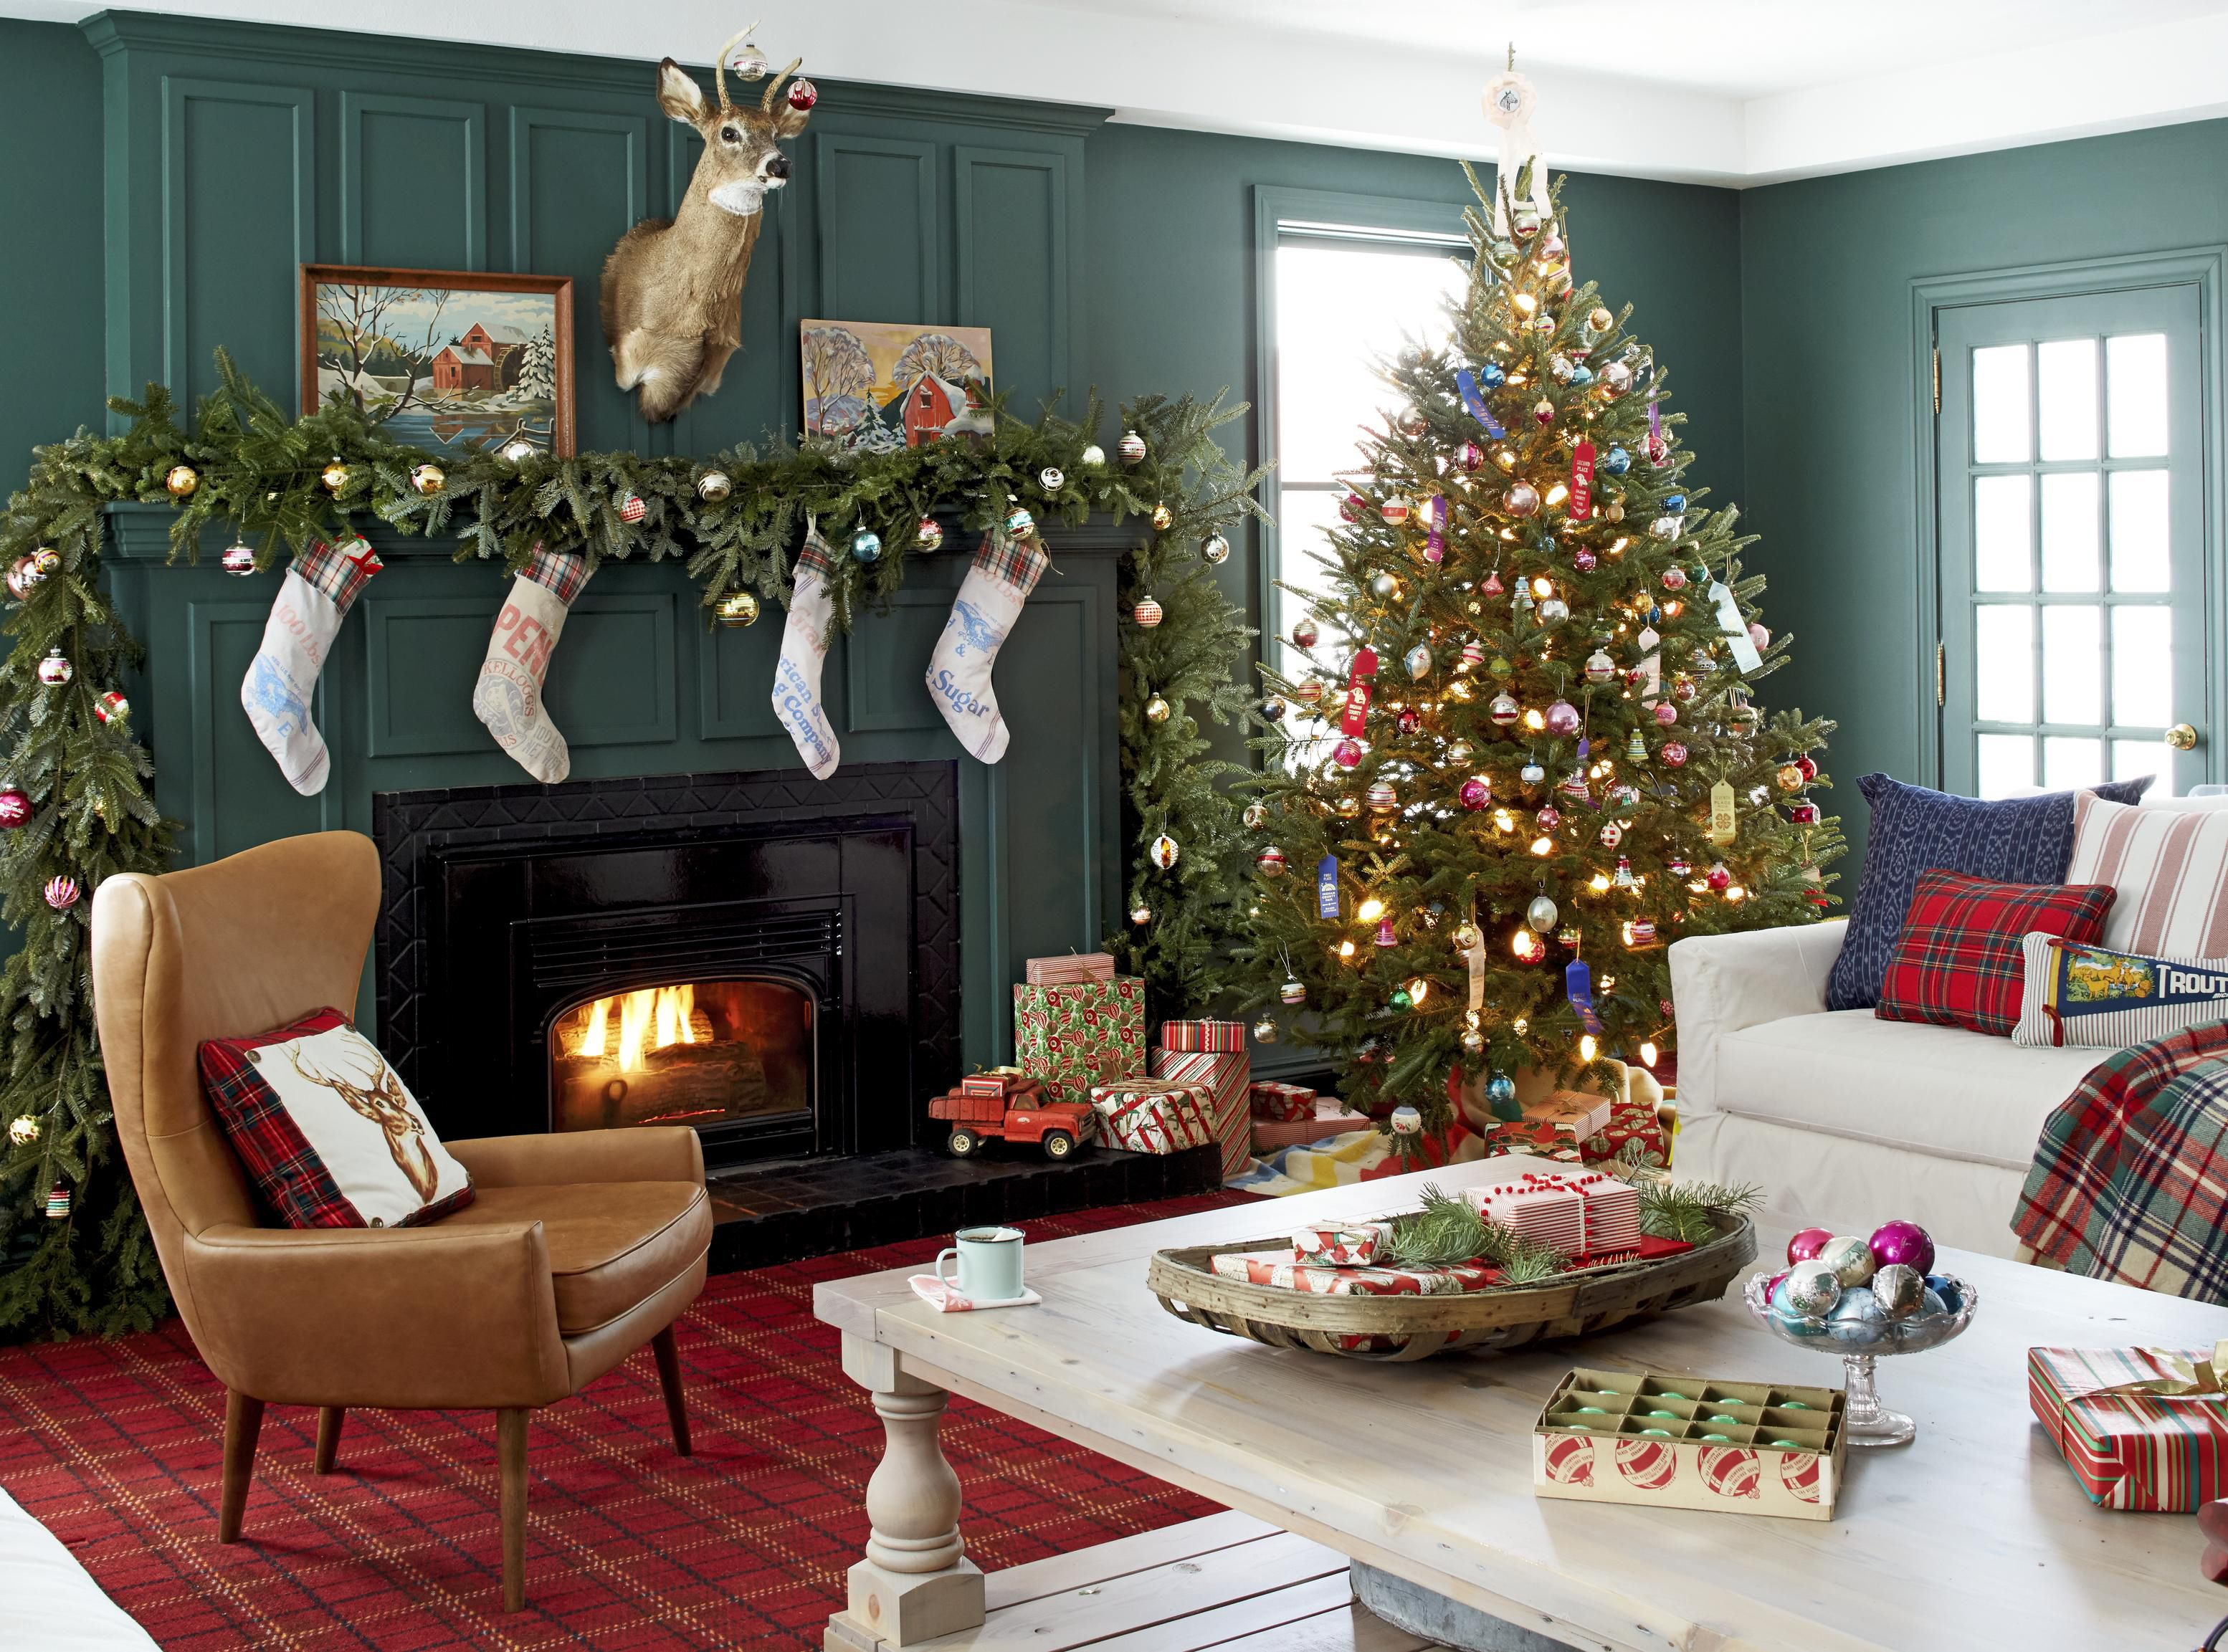 23 Christmas Living Room Decorating Ideas How To